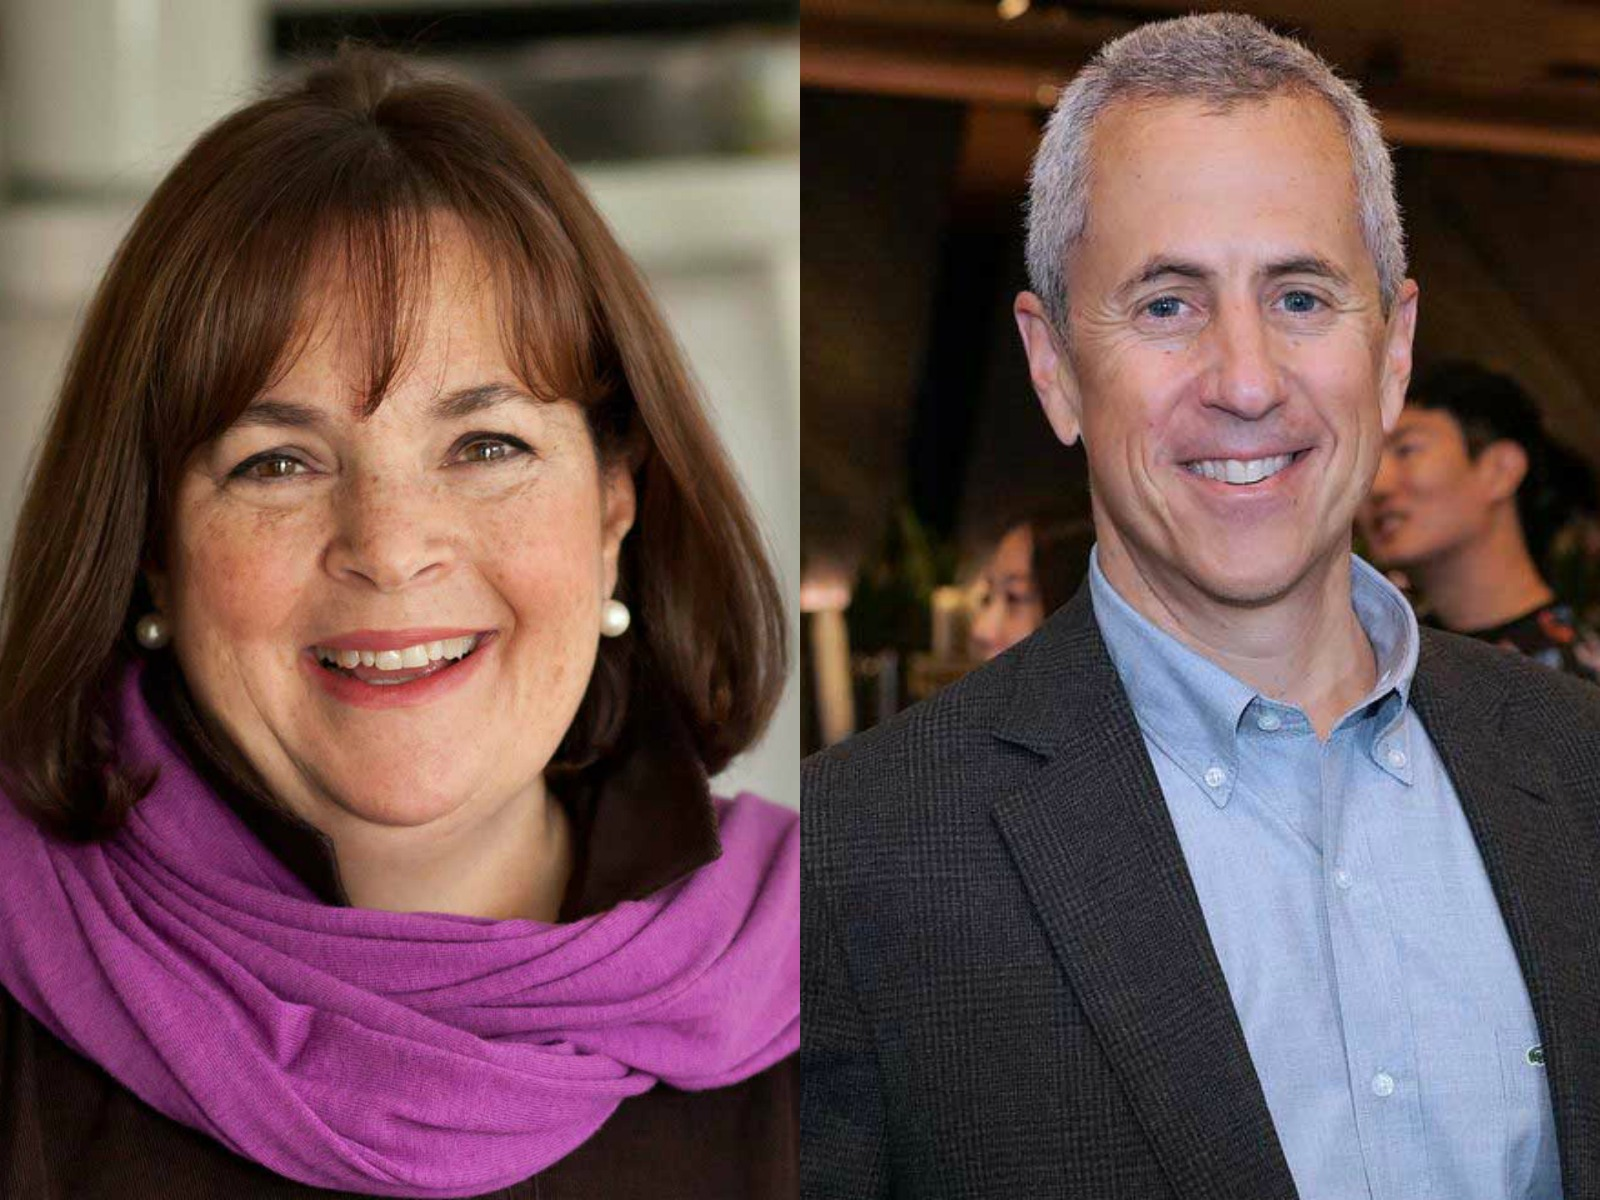 Ina Garten and Danny Meyer Are Two of Time's 100 Most Influential People